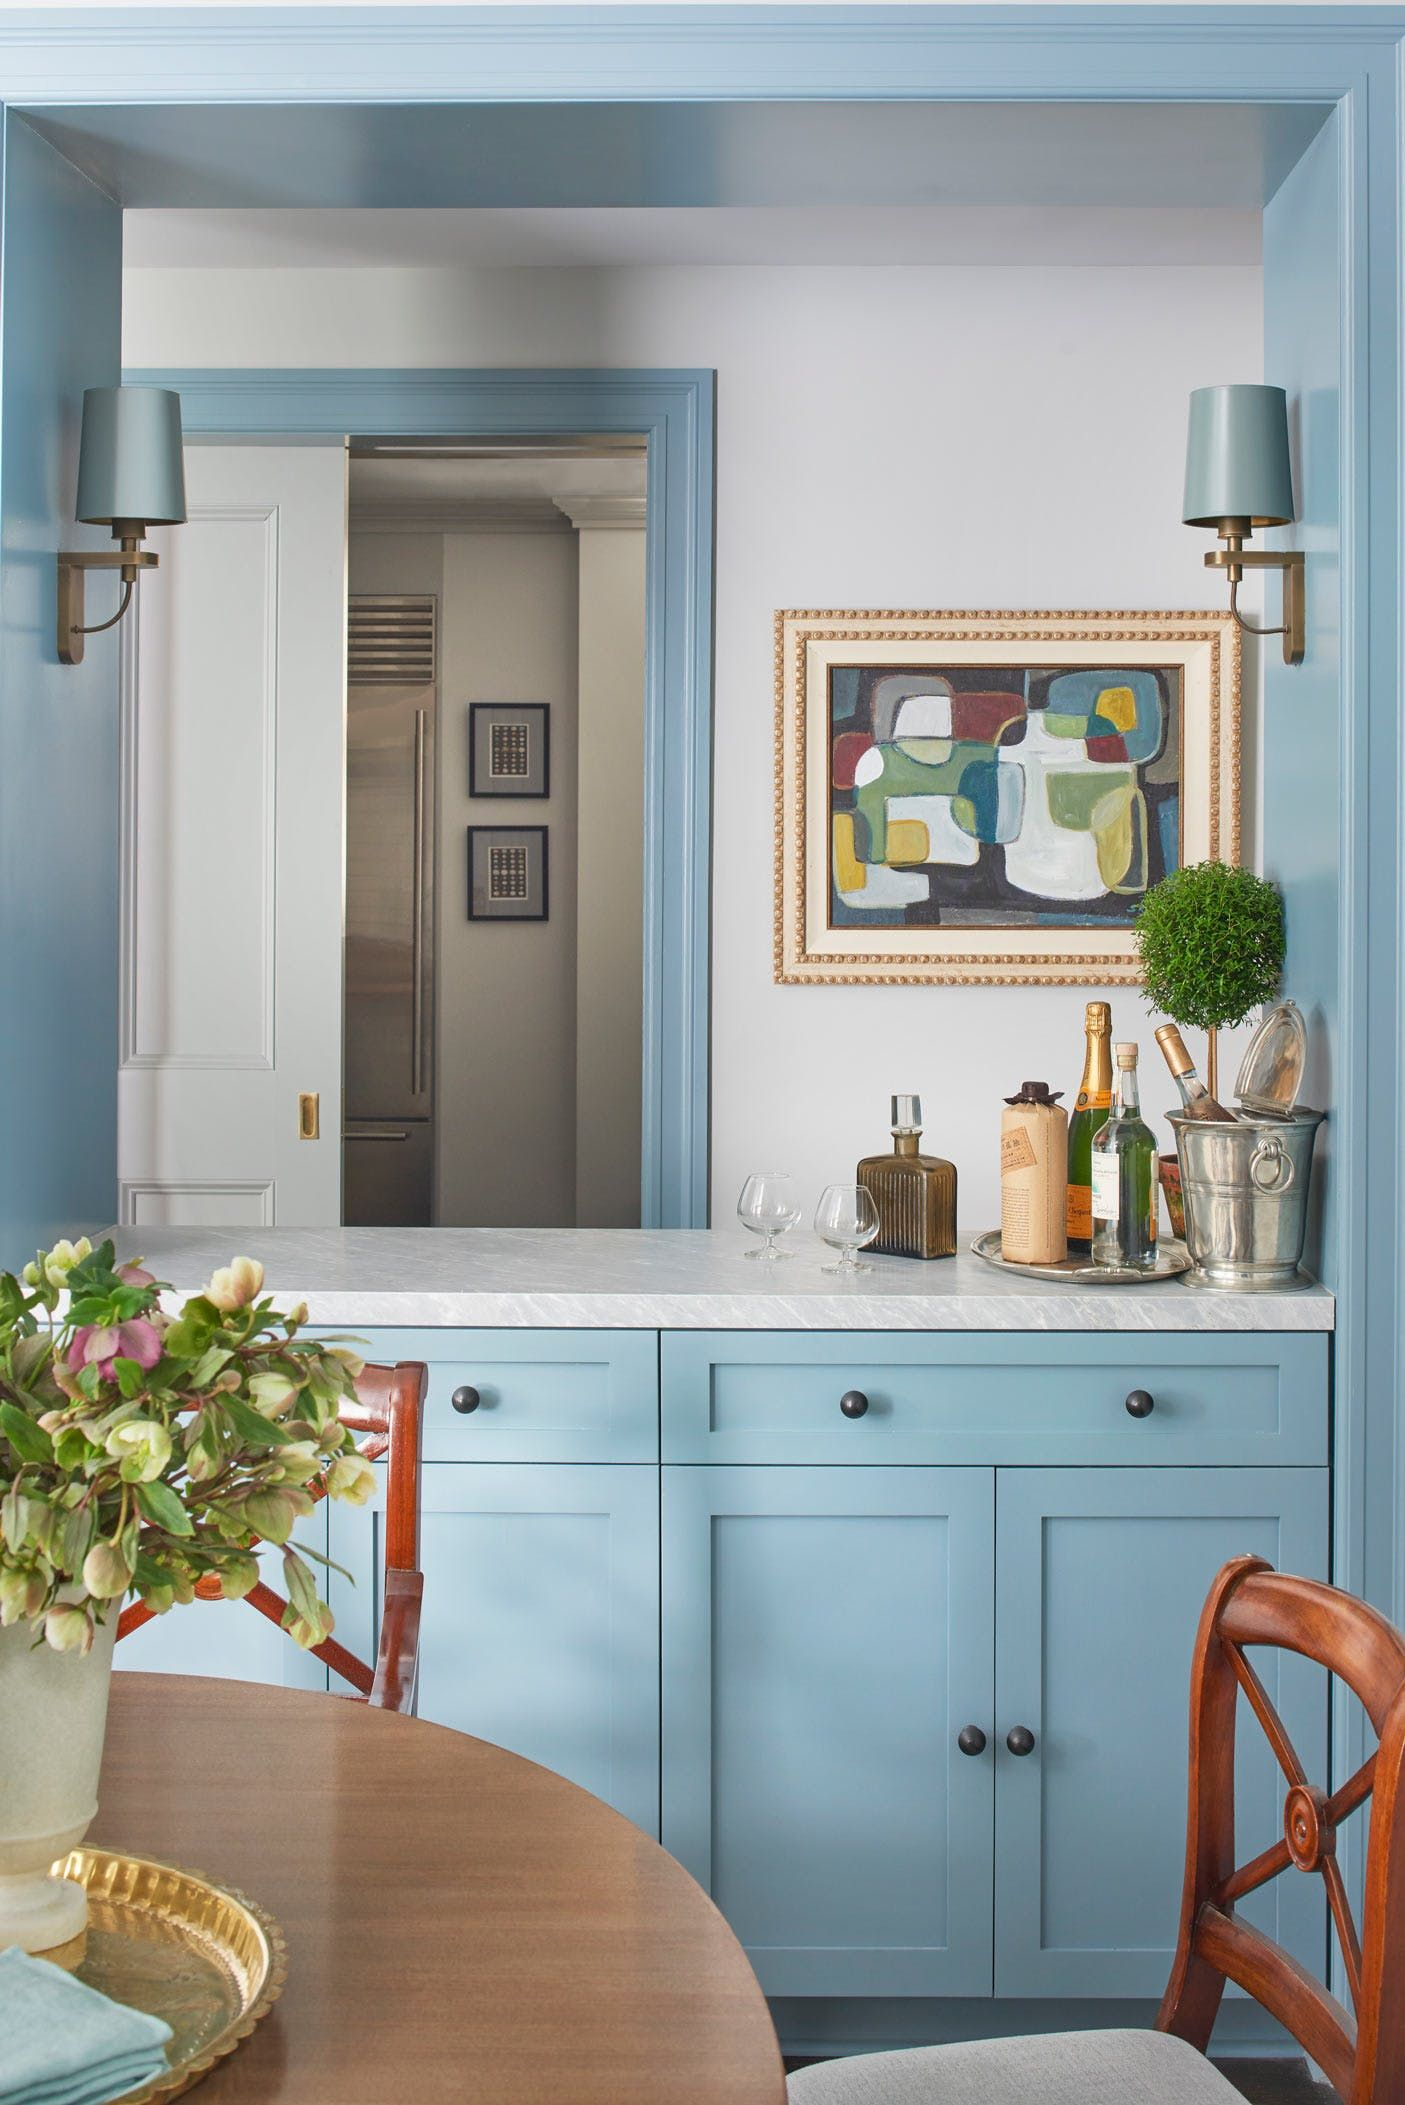 Whitby in 2020 | Dining corner, Urban electric, Kitchen ... on Corner Sconce Shelf Cabinet id=20636